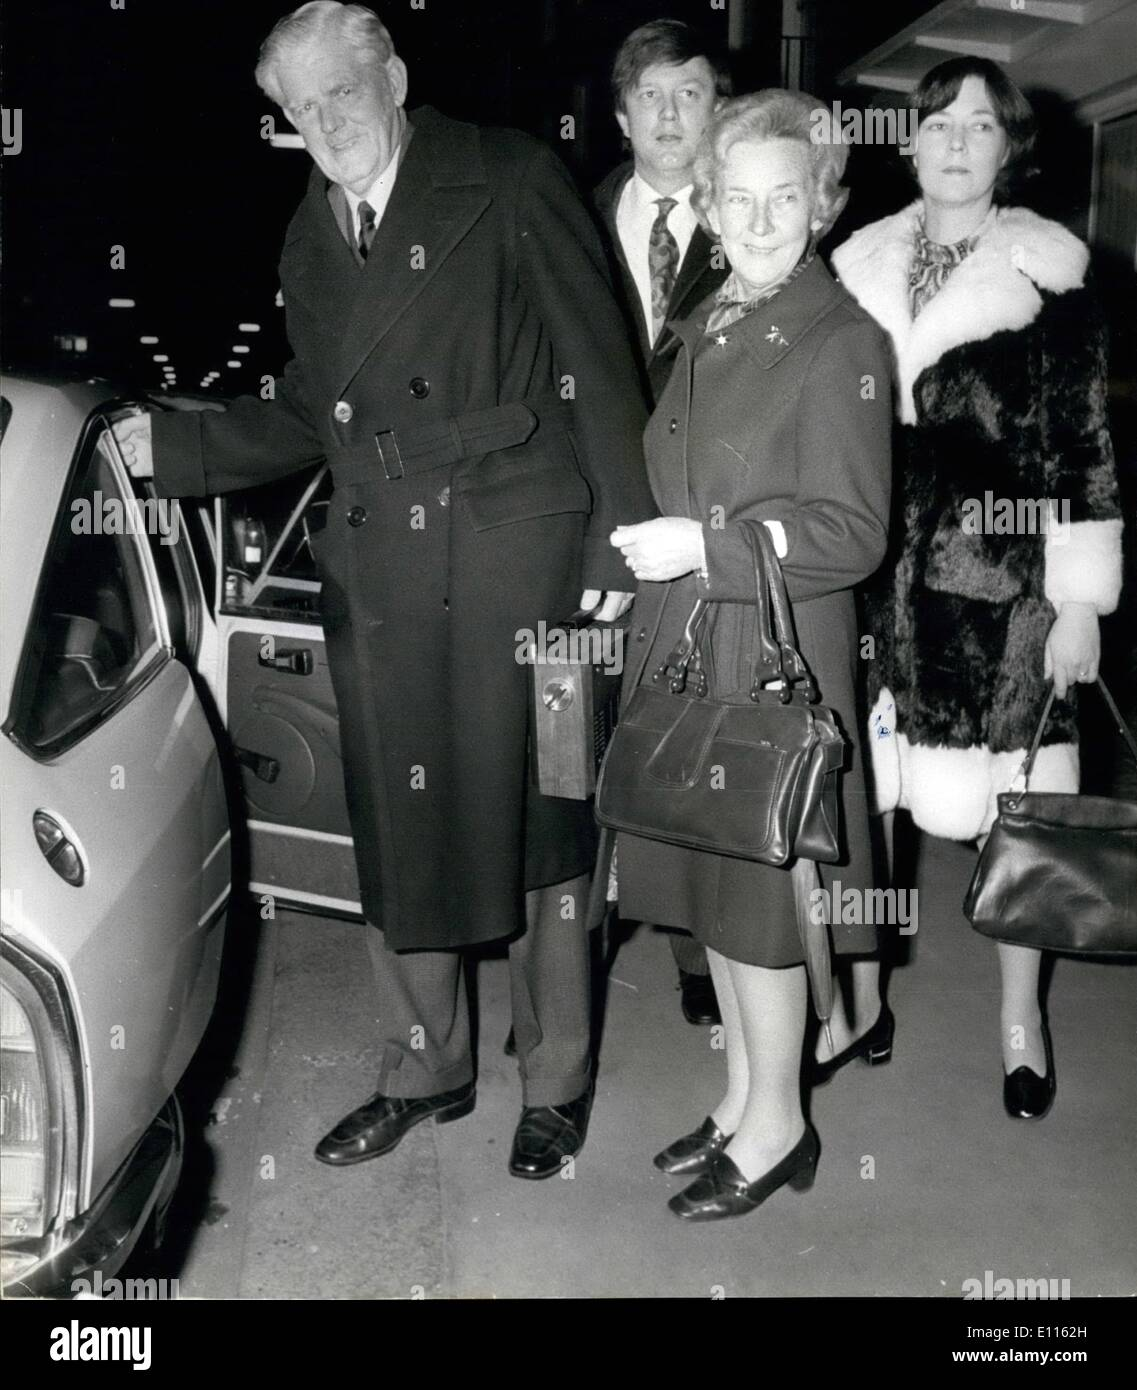 Feb. 02, 1976 - Mr Garfield Todd returns to Rhodesia: Mr. Garfield Todd, former Rhodesian Prime Minister who was freed from house arrest in Rhodesia to visit his daughter Judith, leaving her home in London last night to return to his farm after the three weeks allowed him. Returning with him was his wife Grace, and they were accompanied to Heathrow by their daughter and her husband Mr. Richard Acton. - Stock Image